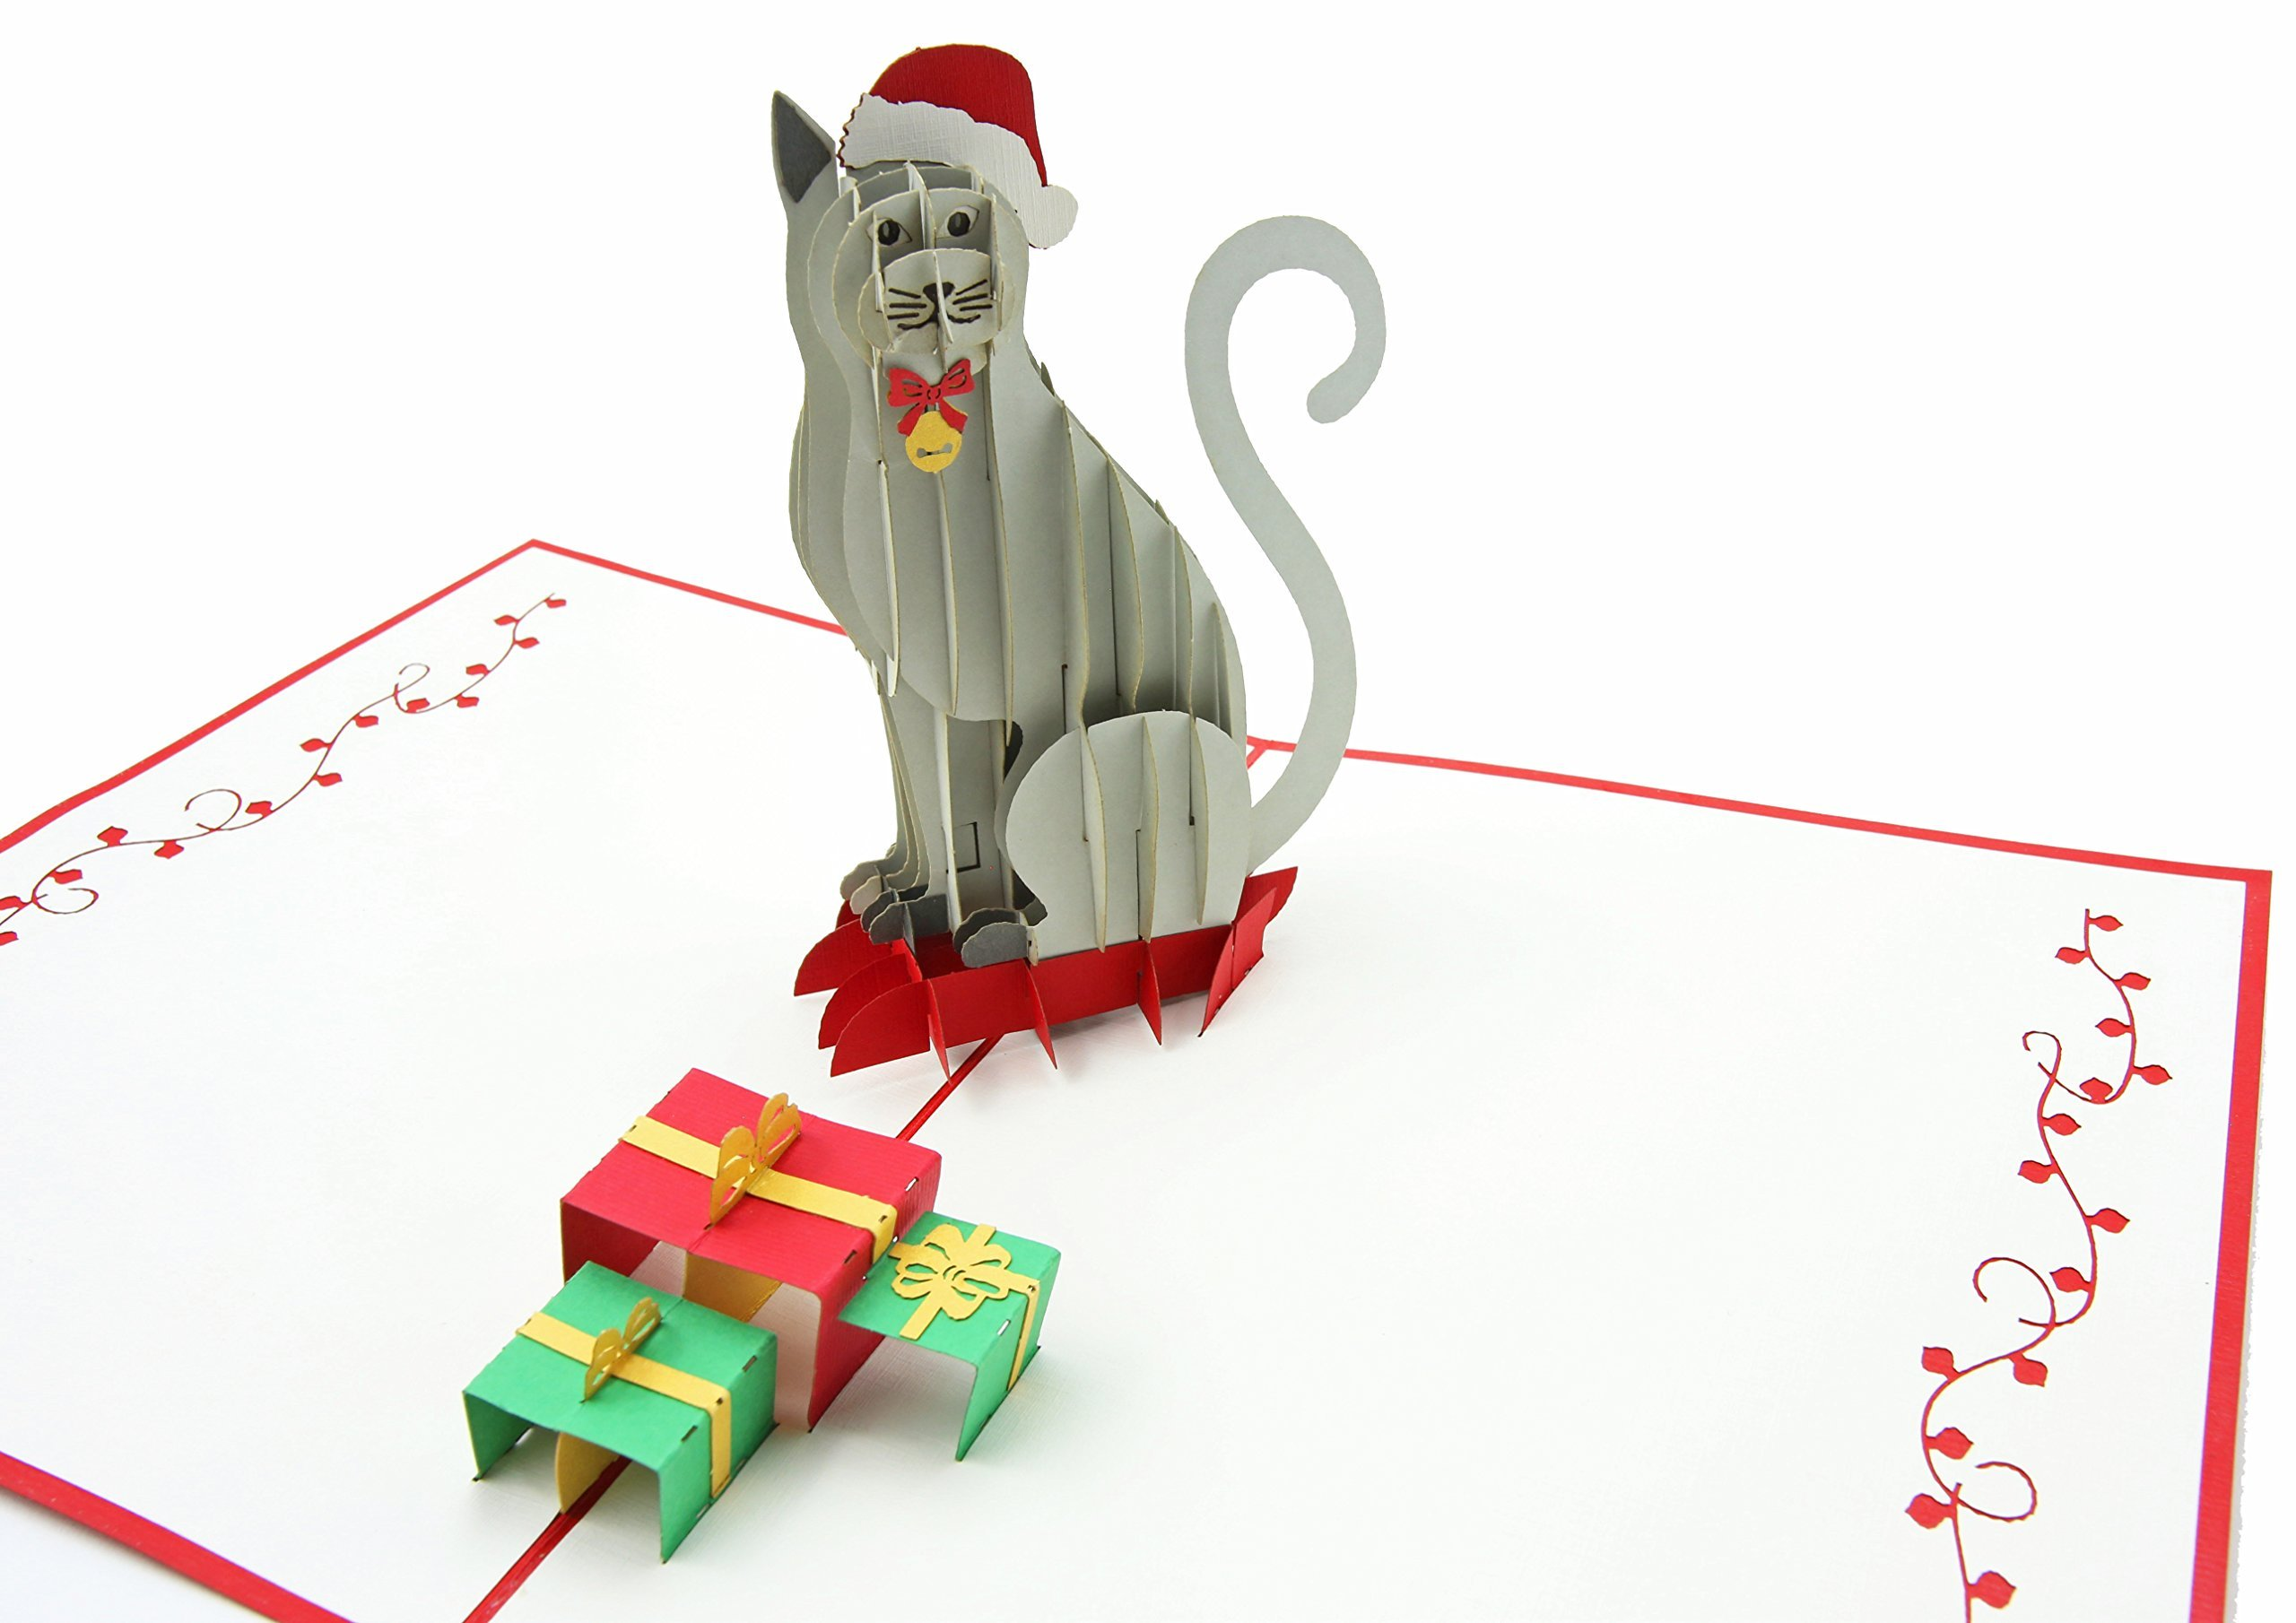 PopLife Holiday Cat 3D Pop Up Greeting Card - Tree Trimmers, Crafters, Scrapbooking - Folds Flat for Mailing - Holiday Party, White Elephant, Office Gift